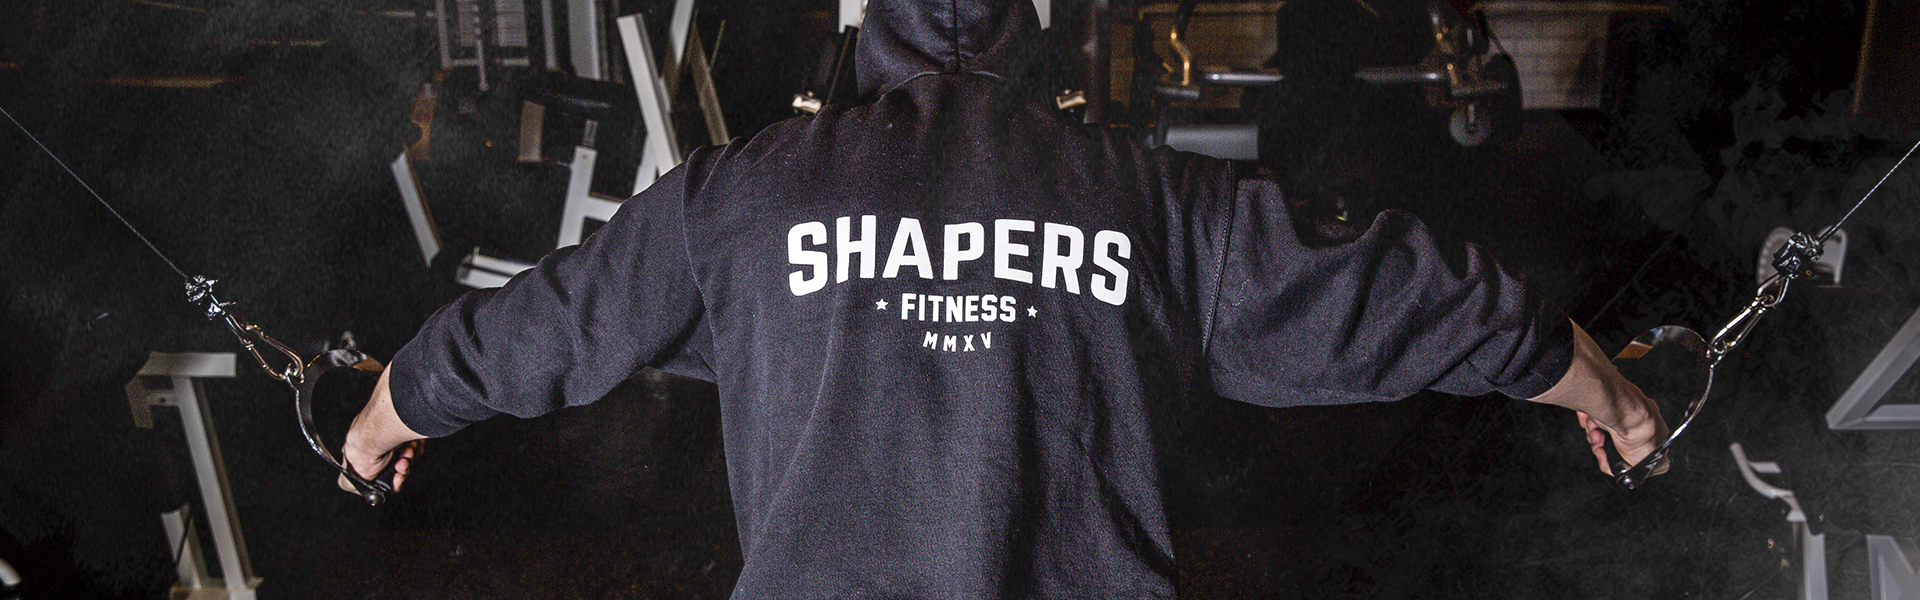 Shapers Fitness 7